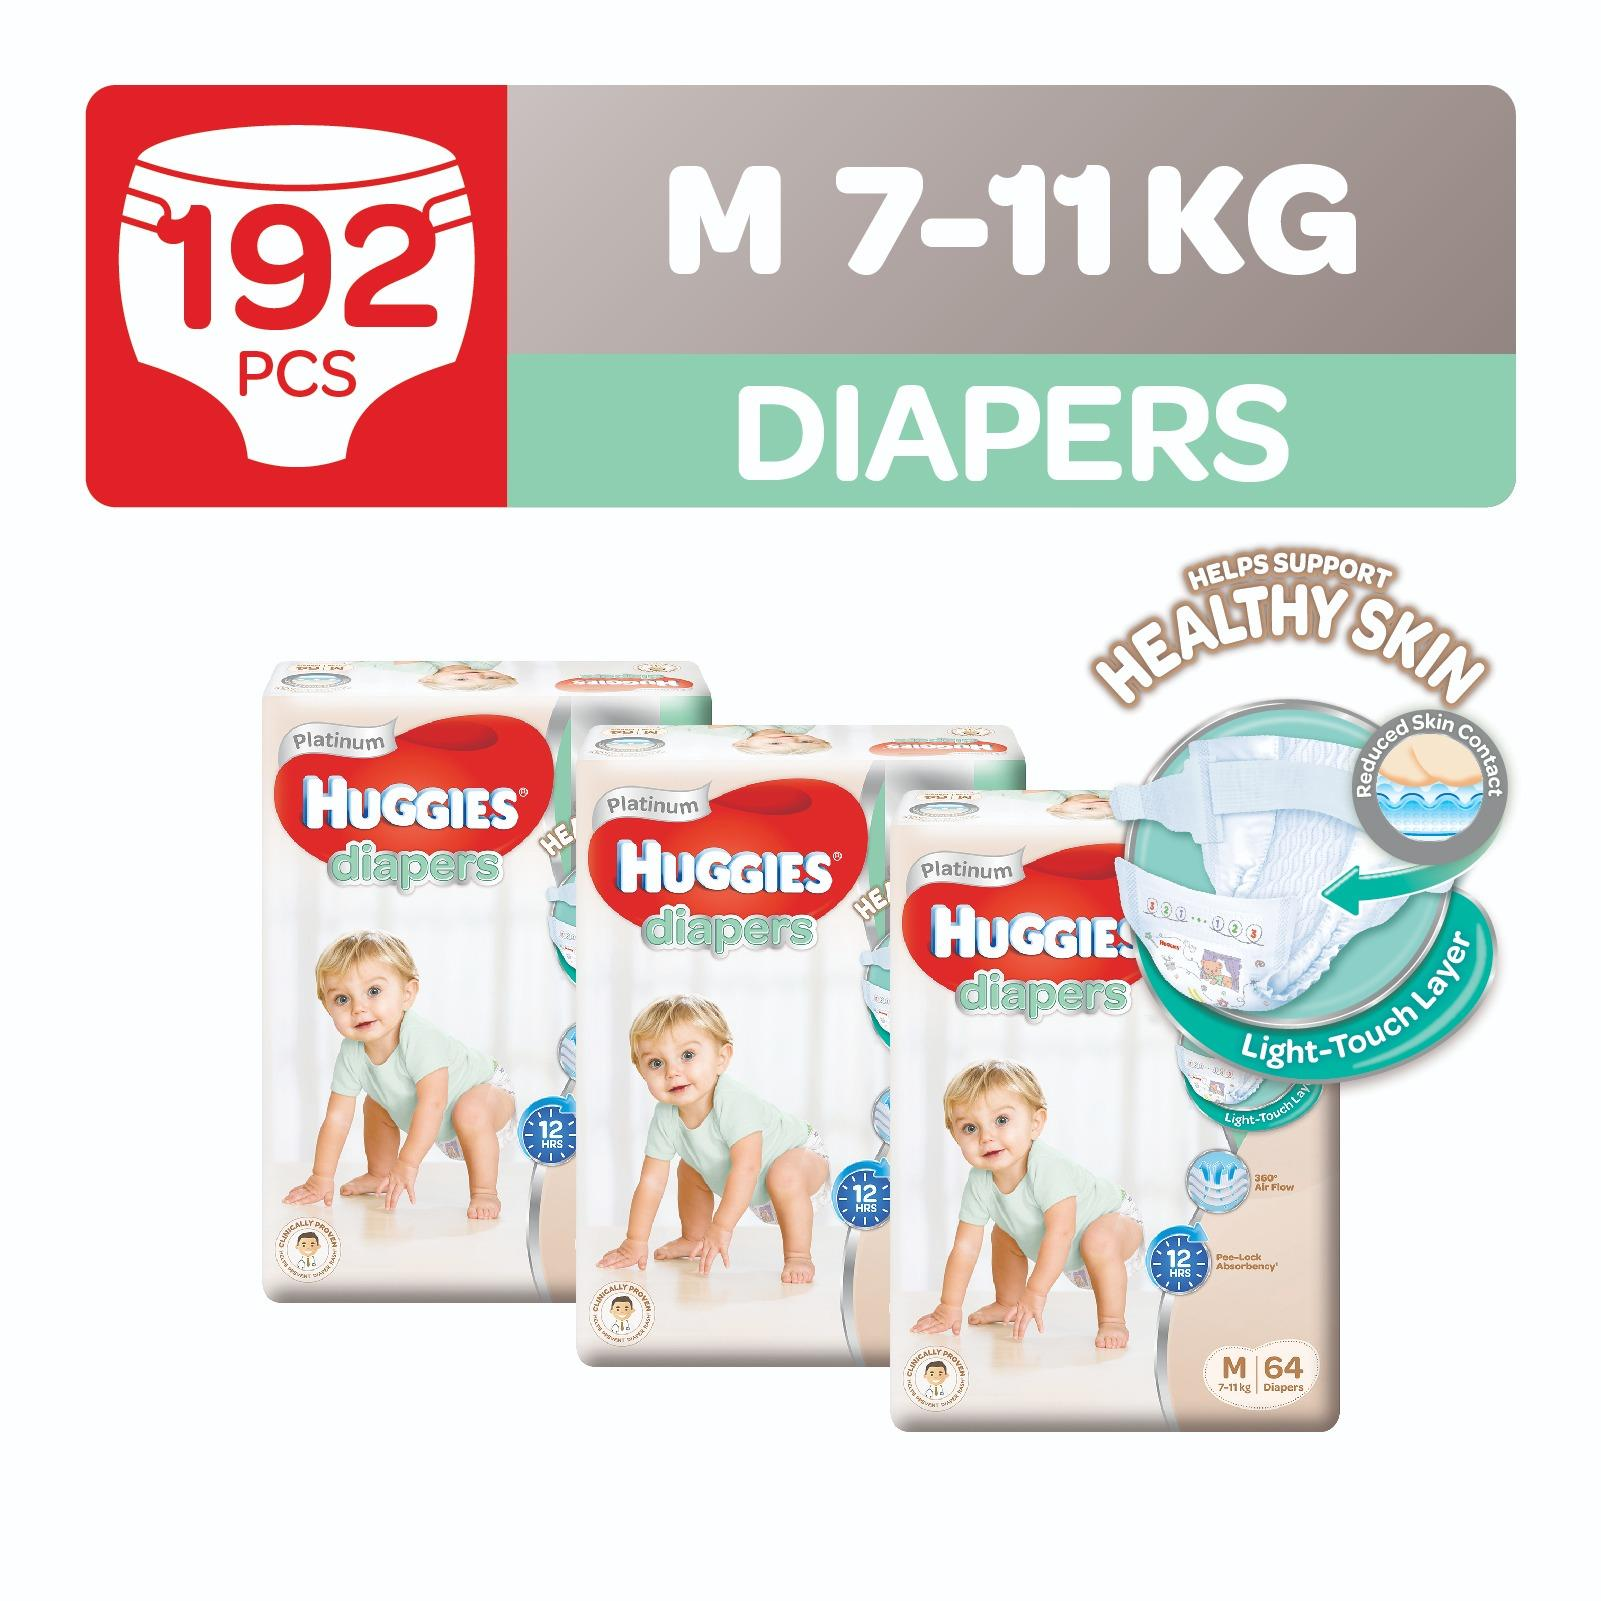 Compare Prices For Huggies Platinum Diapers M 64Pcs X 3 Packs